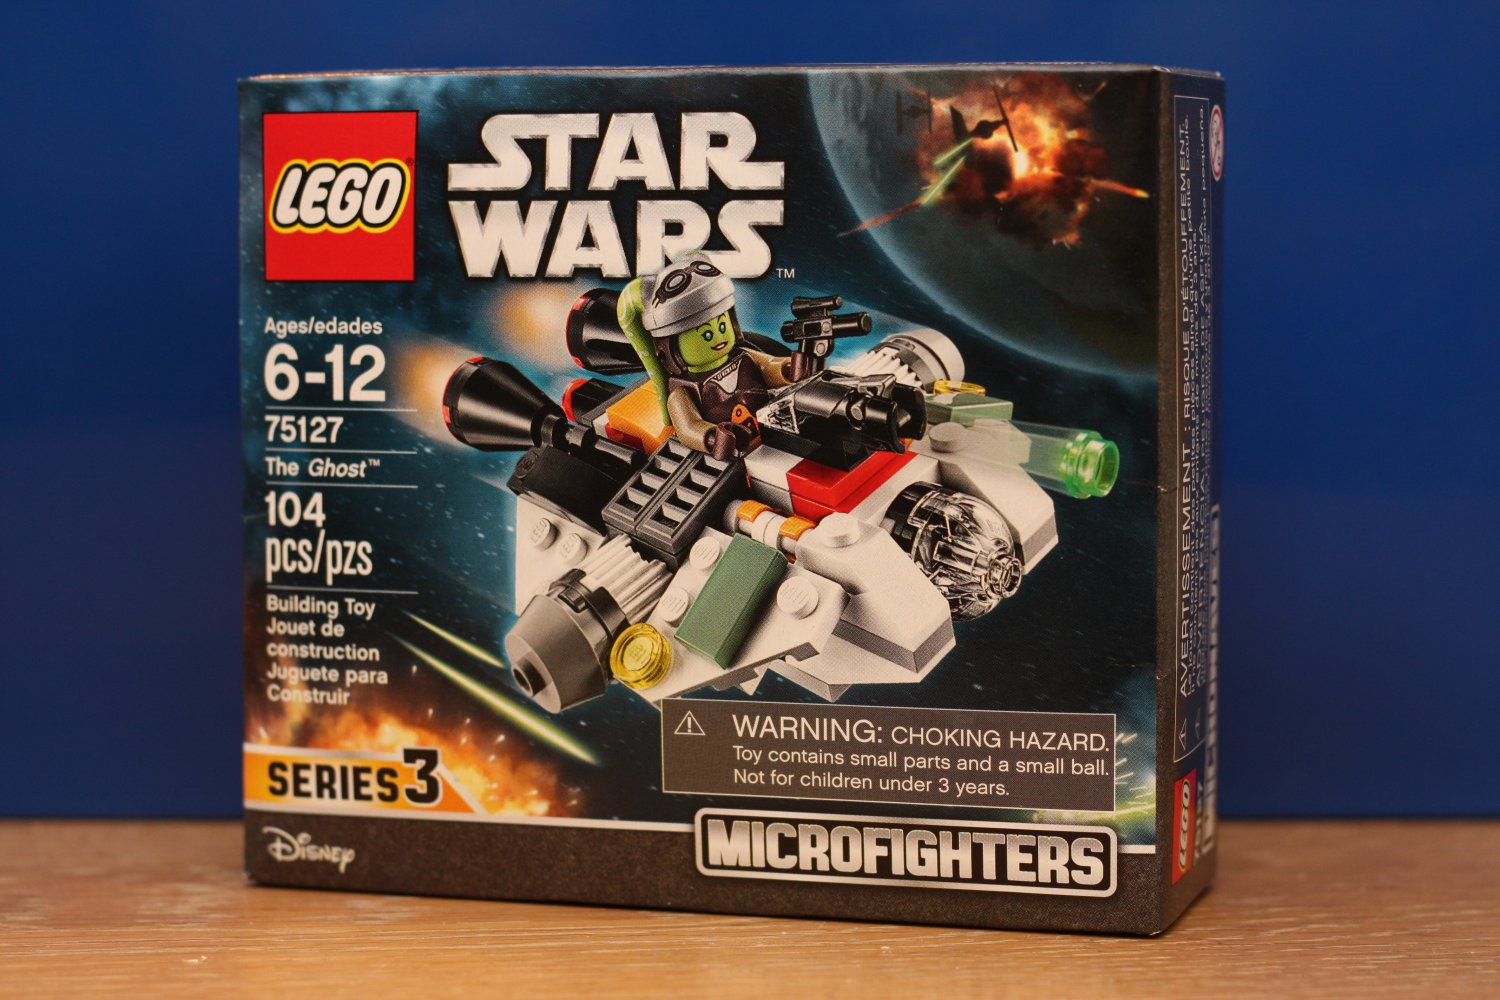 Lego Star Wars Microfighters The Ghost (75127)